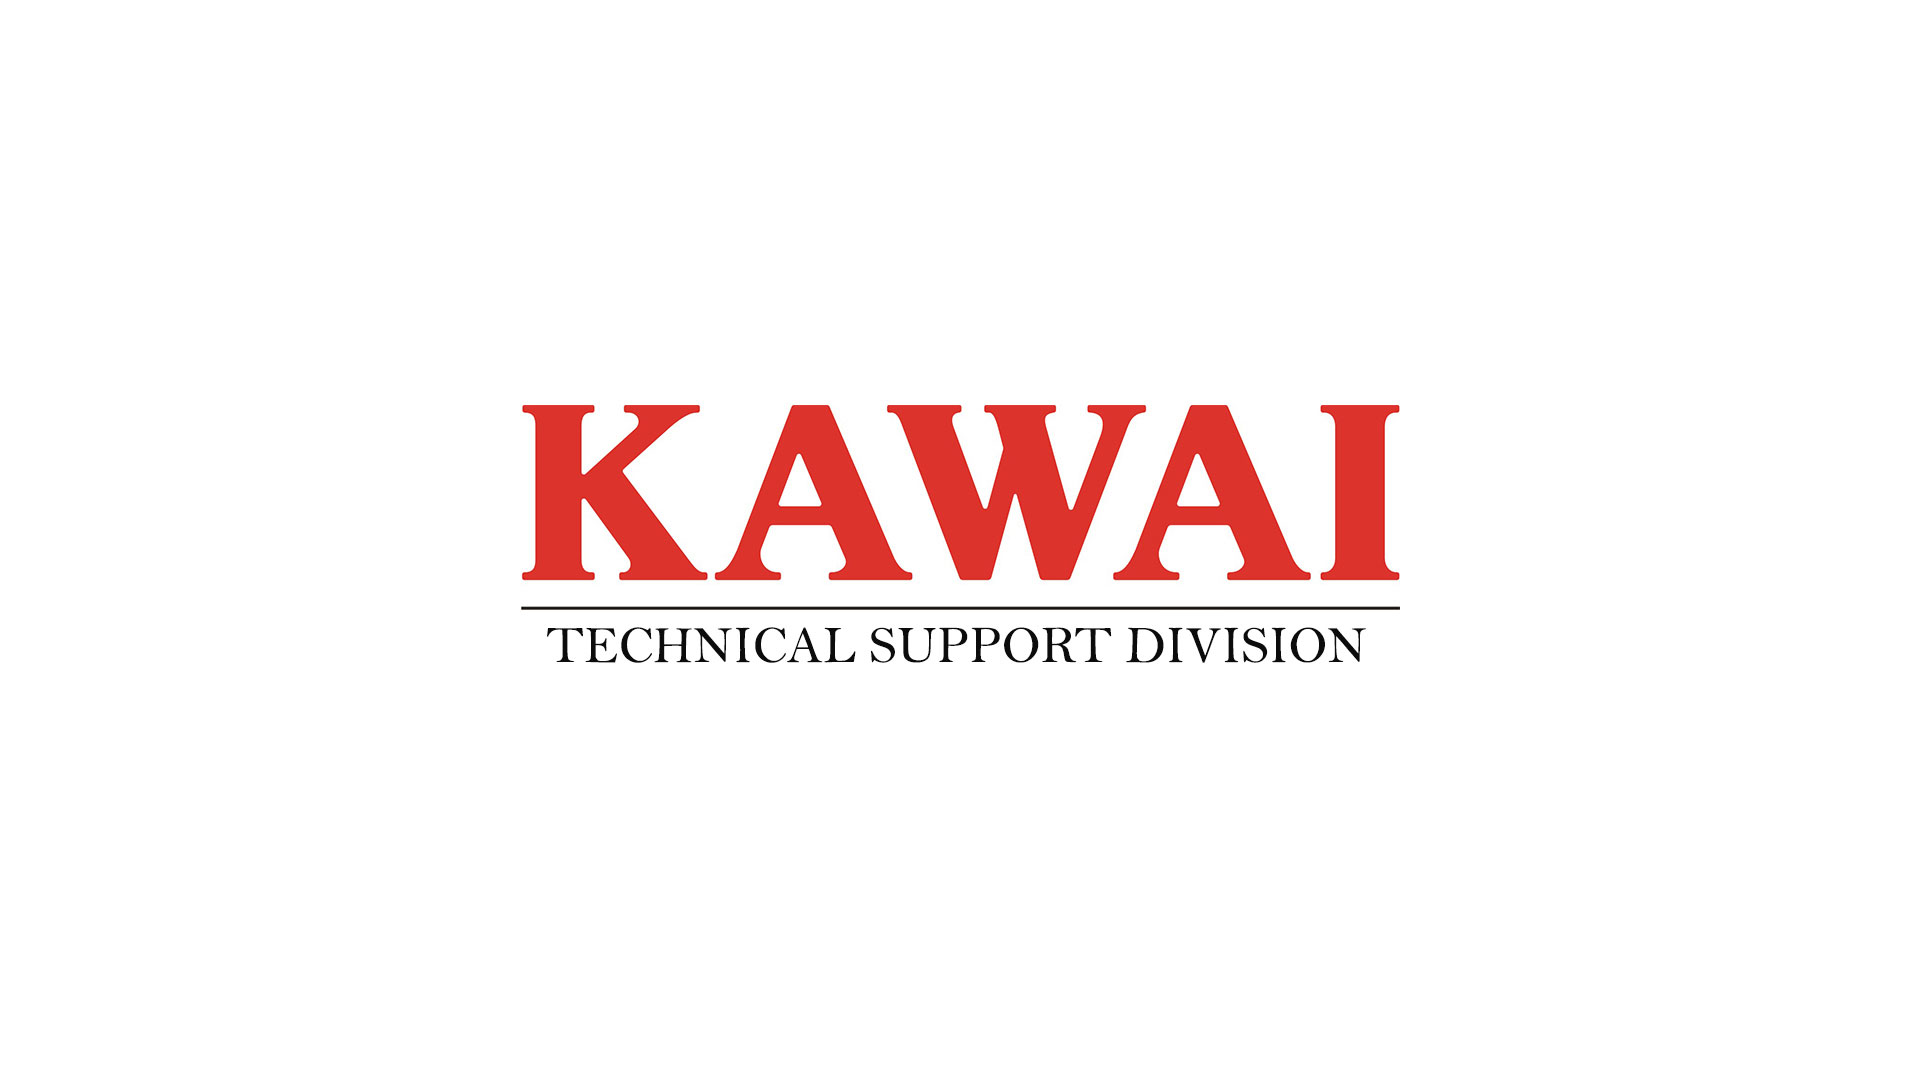 Kawai Technical Support Division